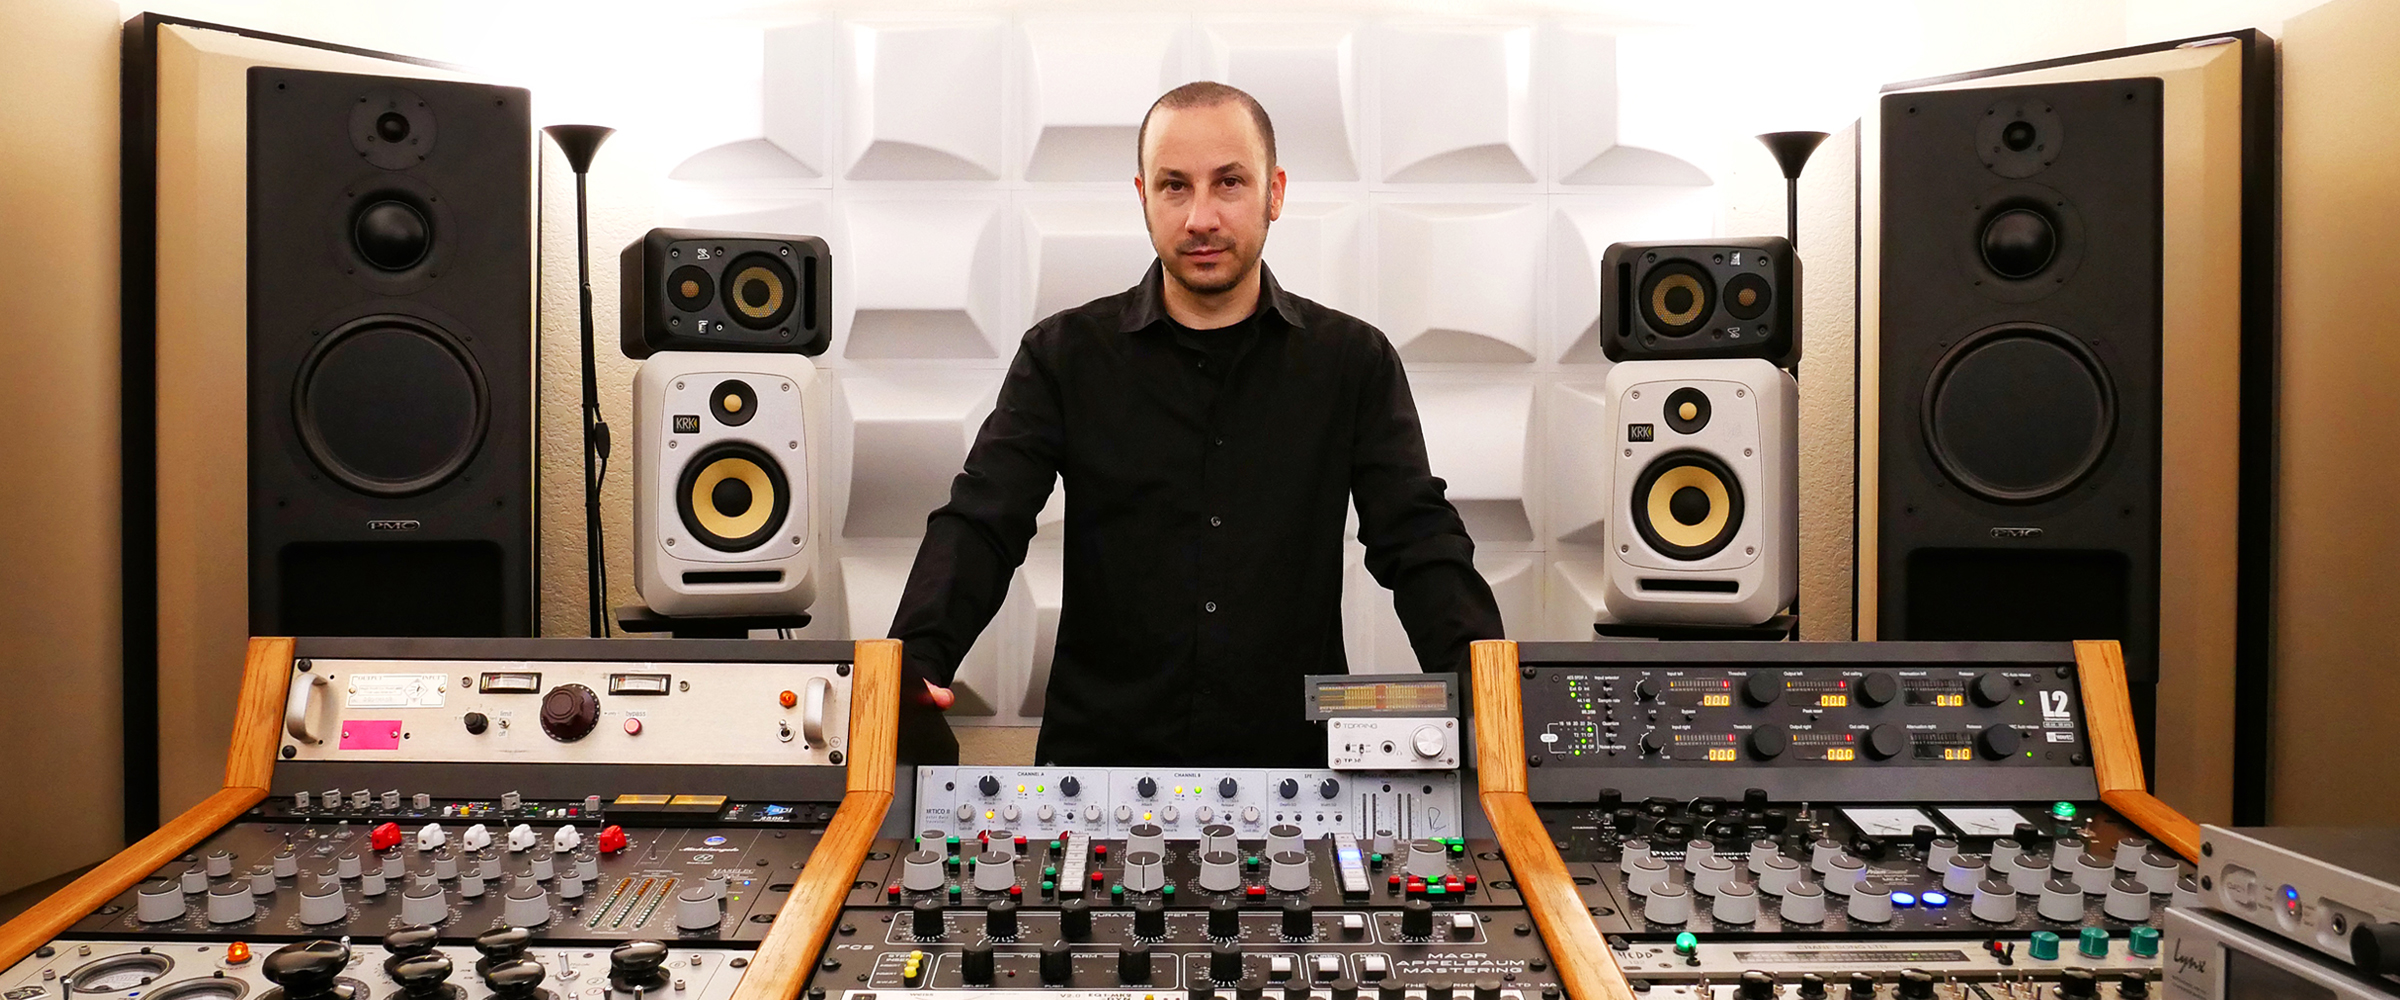 Creative Mastering With Maor Appelbaum